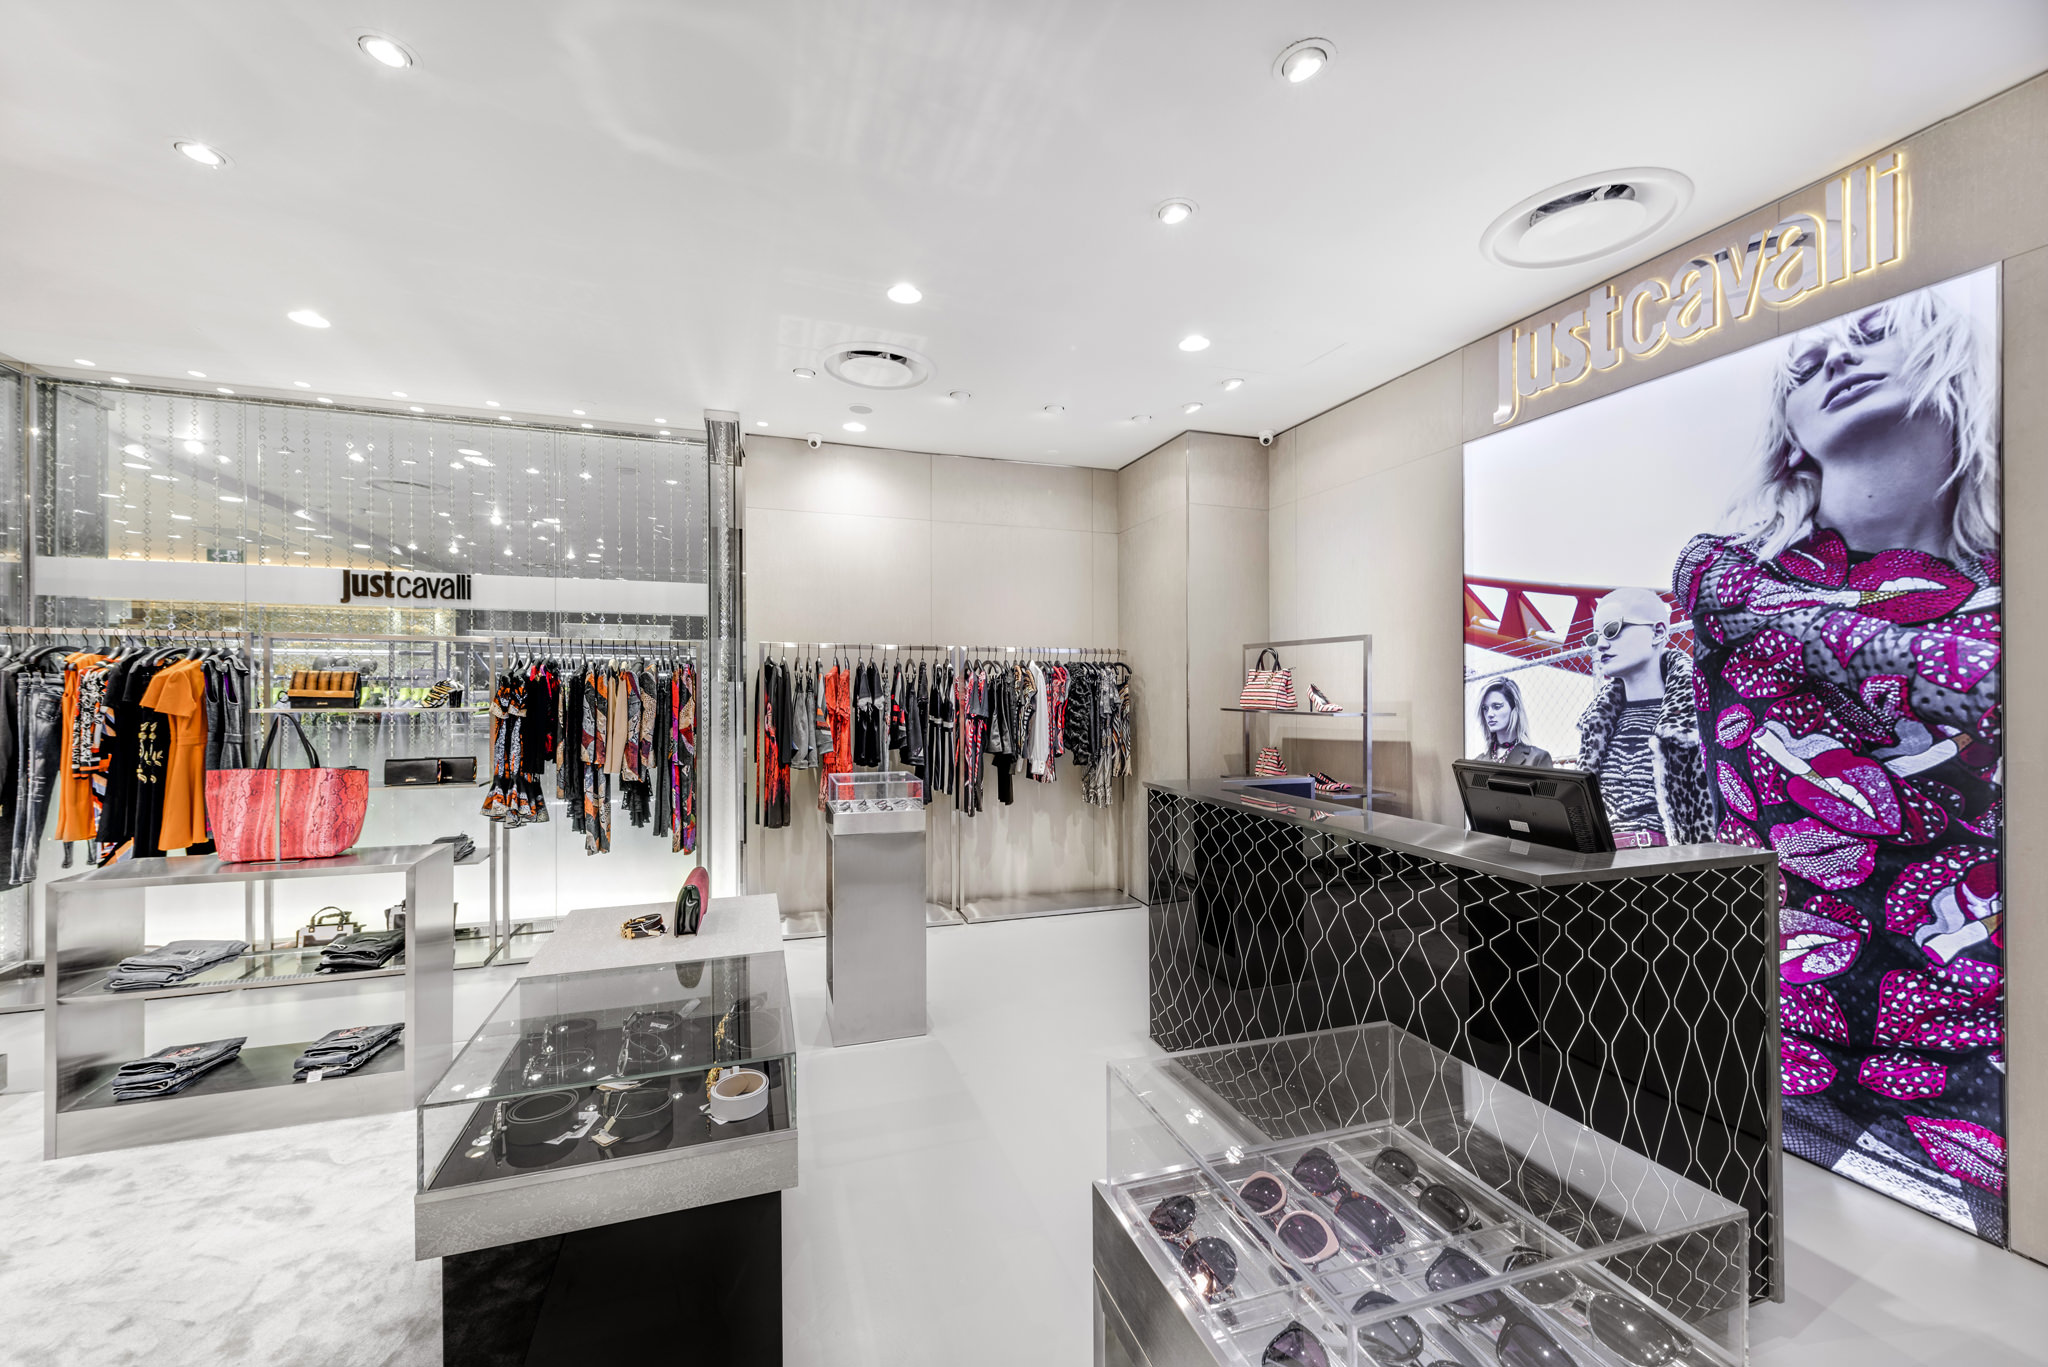 20160729 - Just Cavali - HCM - Commercial - Interior - Store - Retouch 0007.jpg